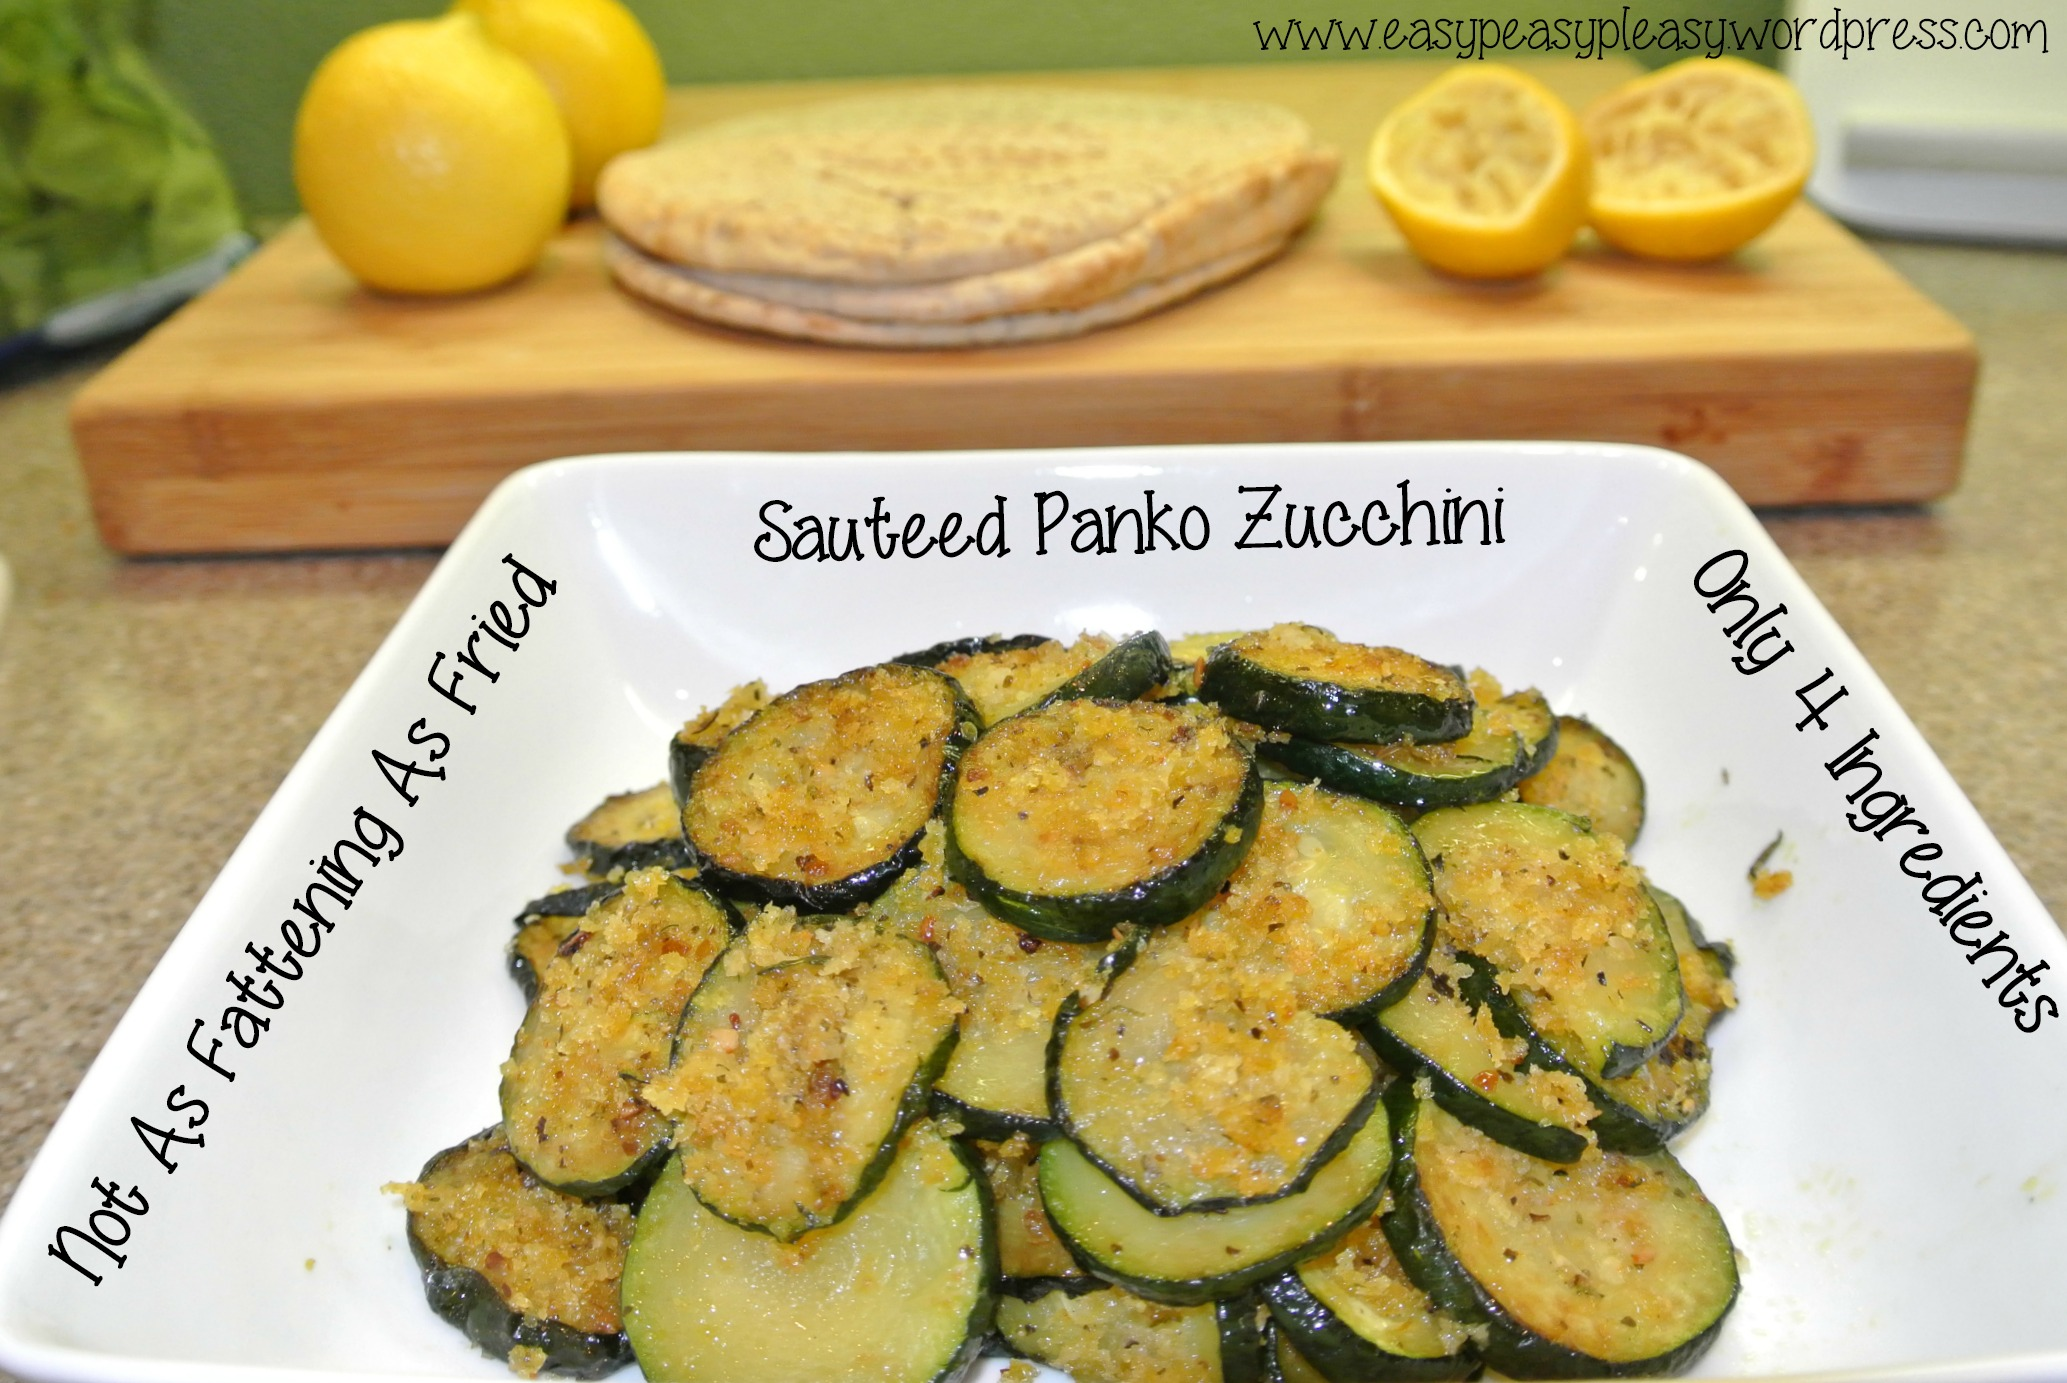 Only 4 Ingredients Not As Fattening As Fried-Sauteed Panko Zucchini